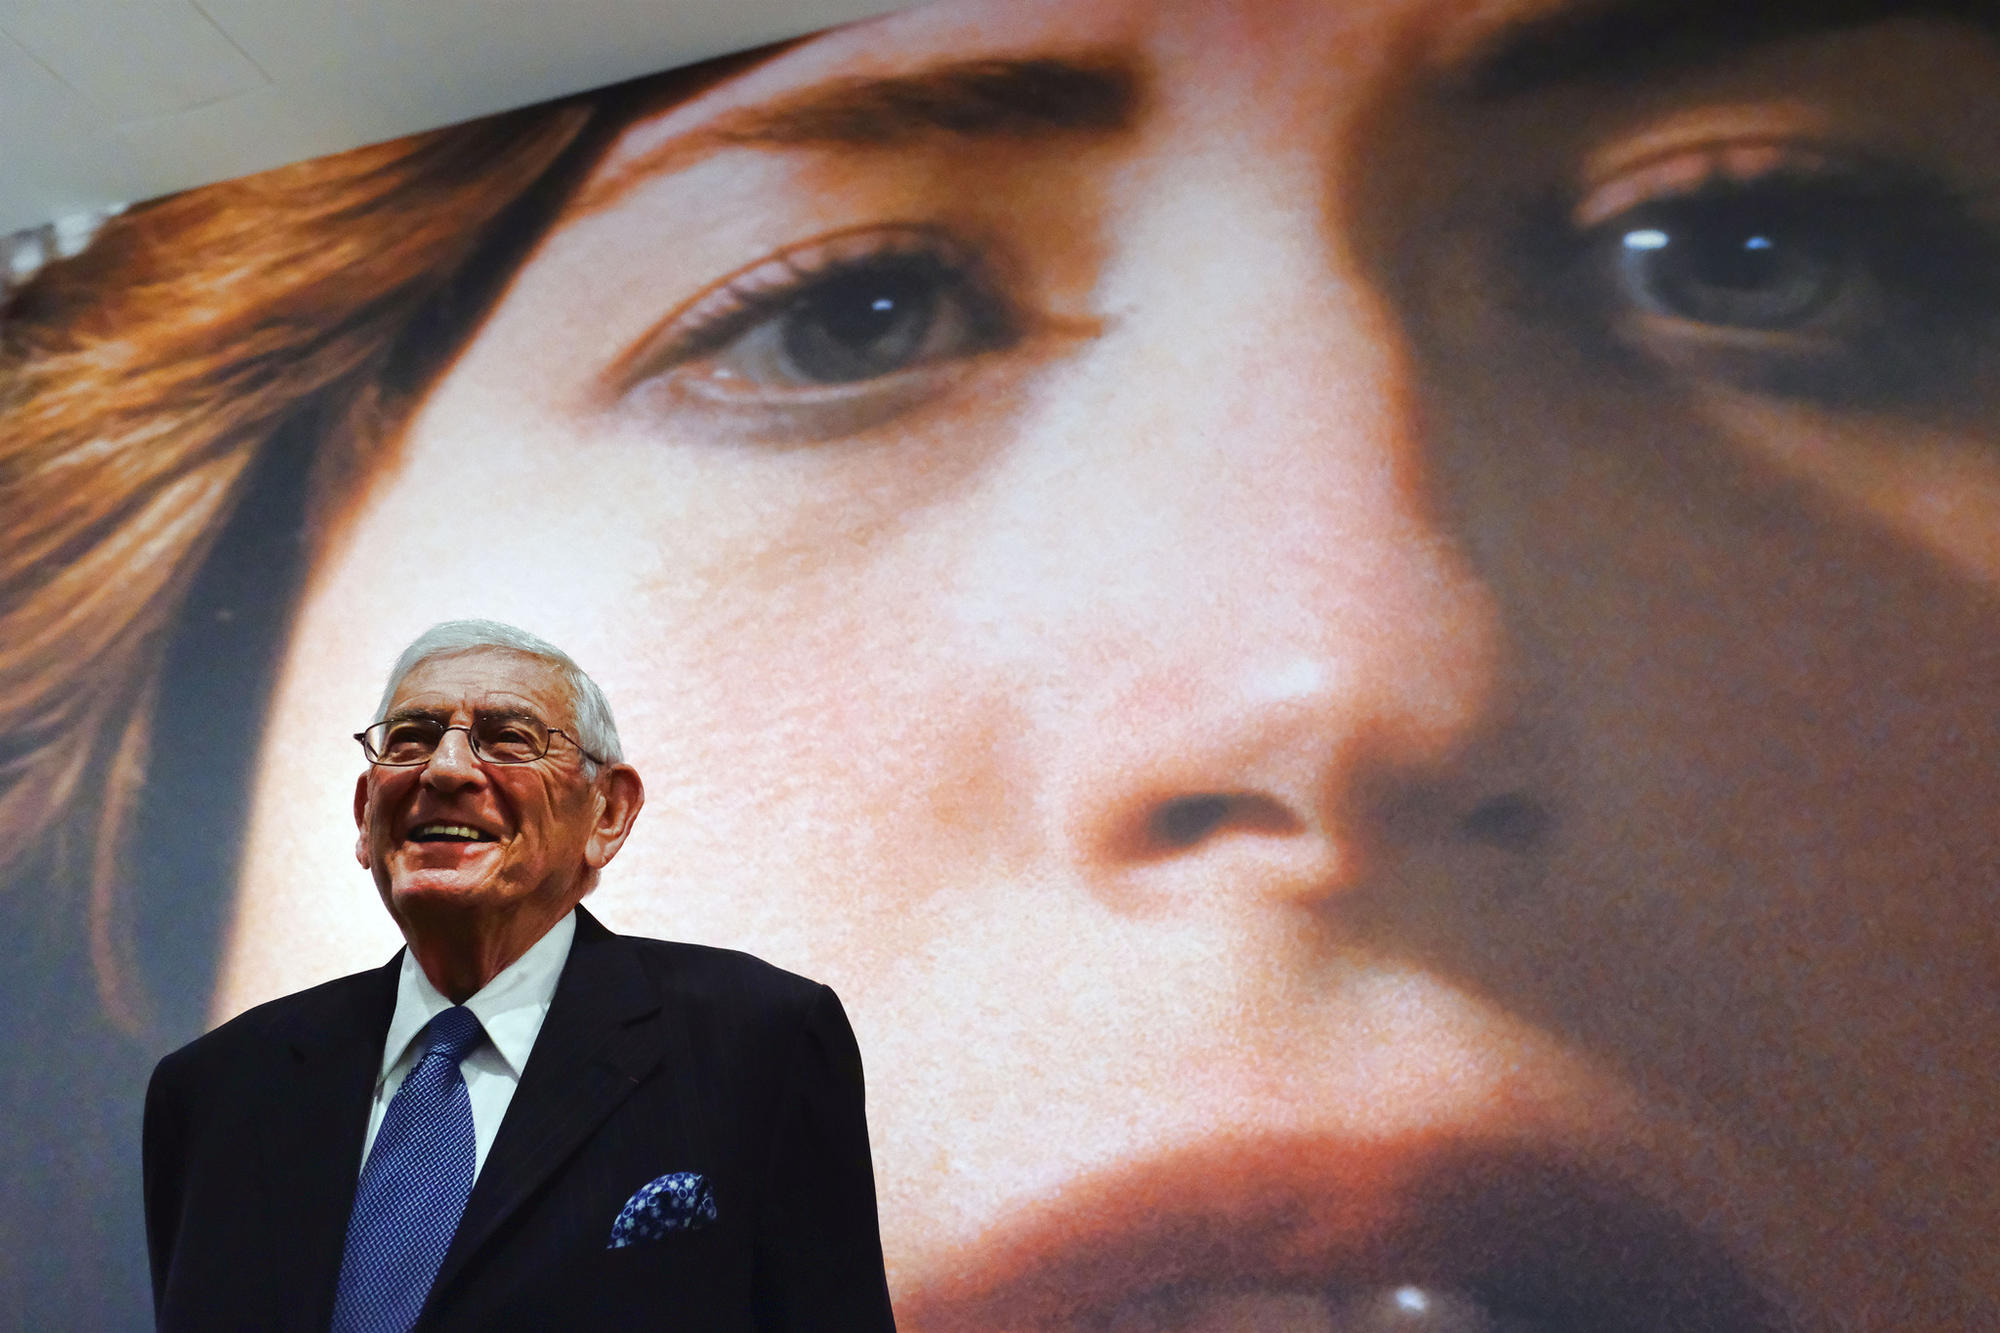 Eli Broad speaks during a press preview of the Cindy Sherman exhibition at the Broad Museum on Wednesday.